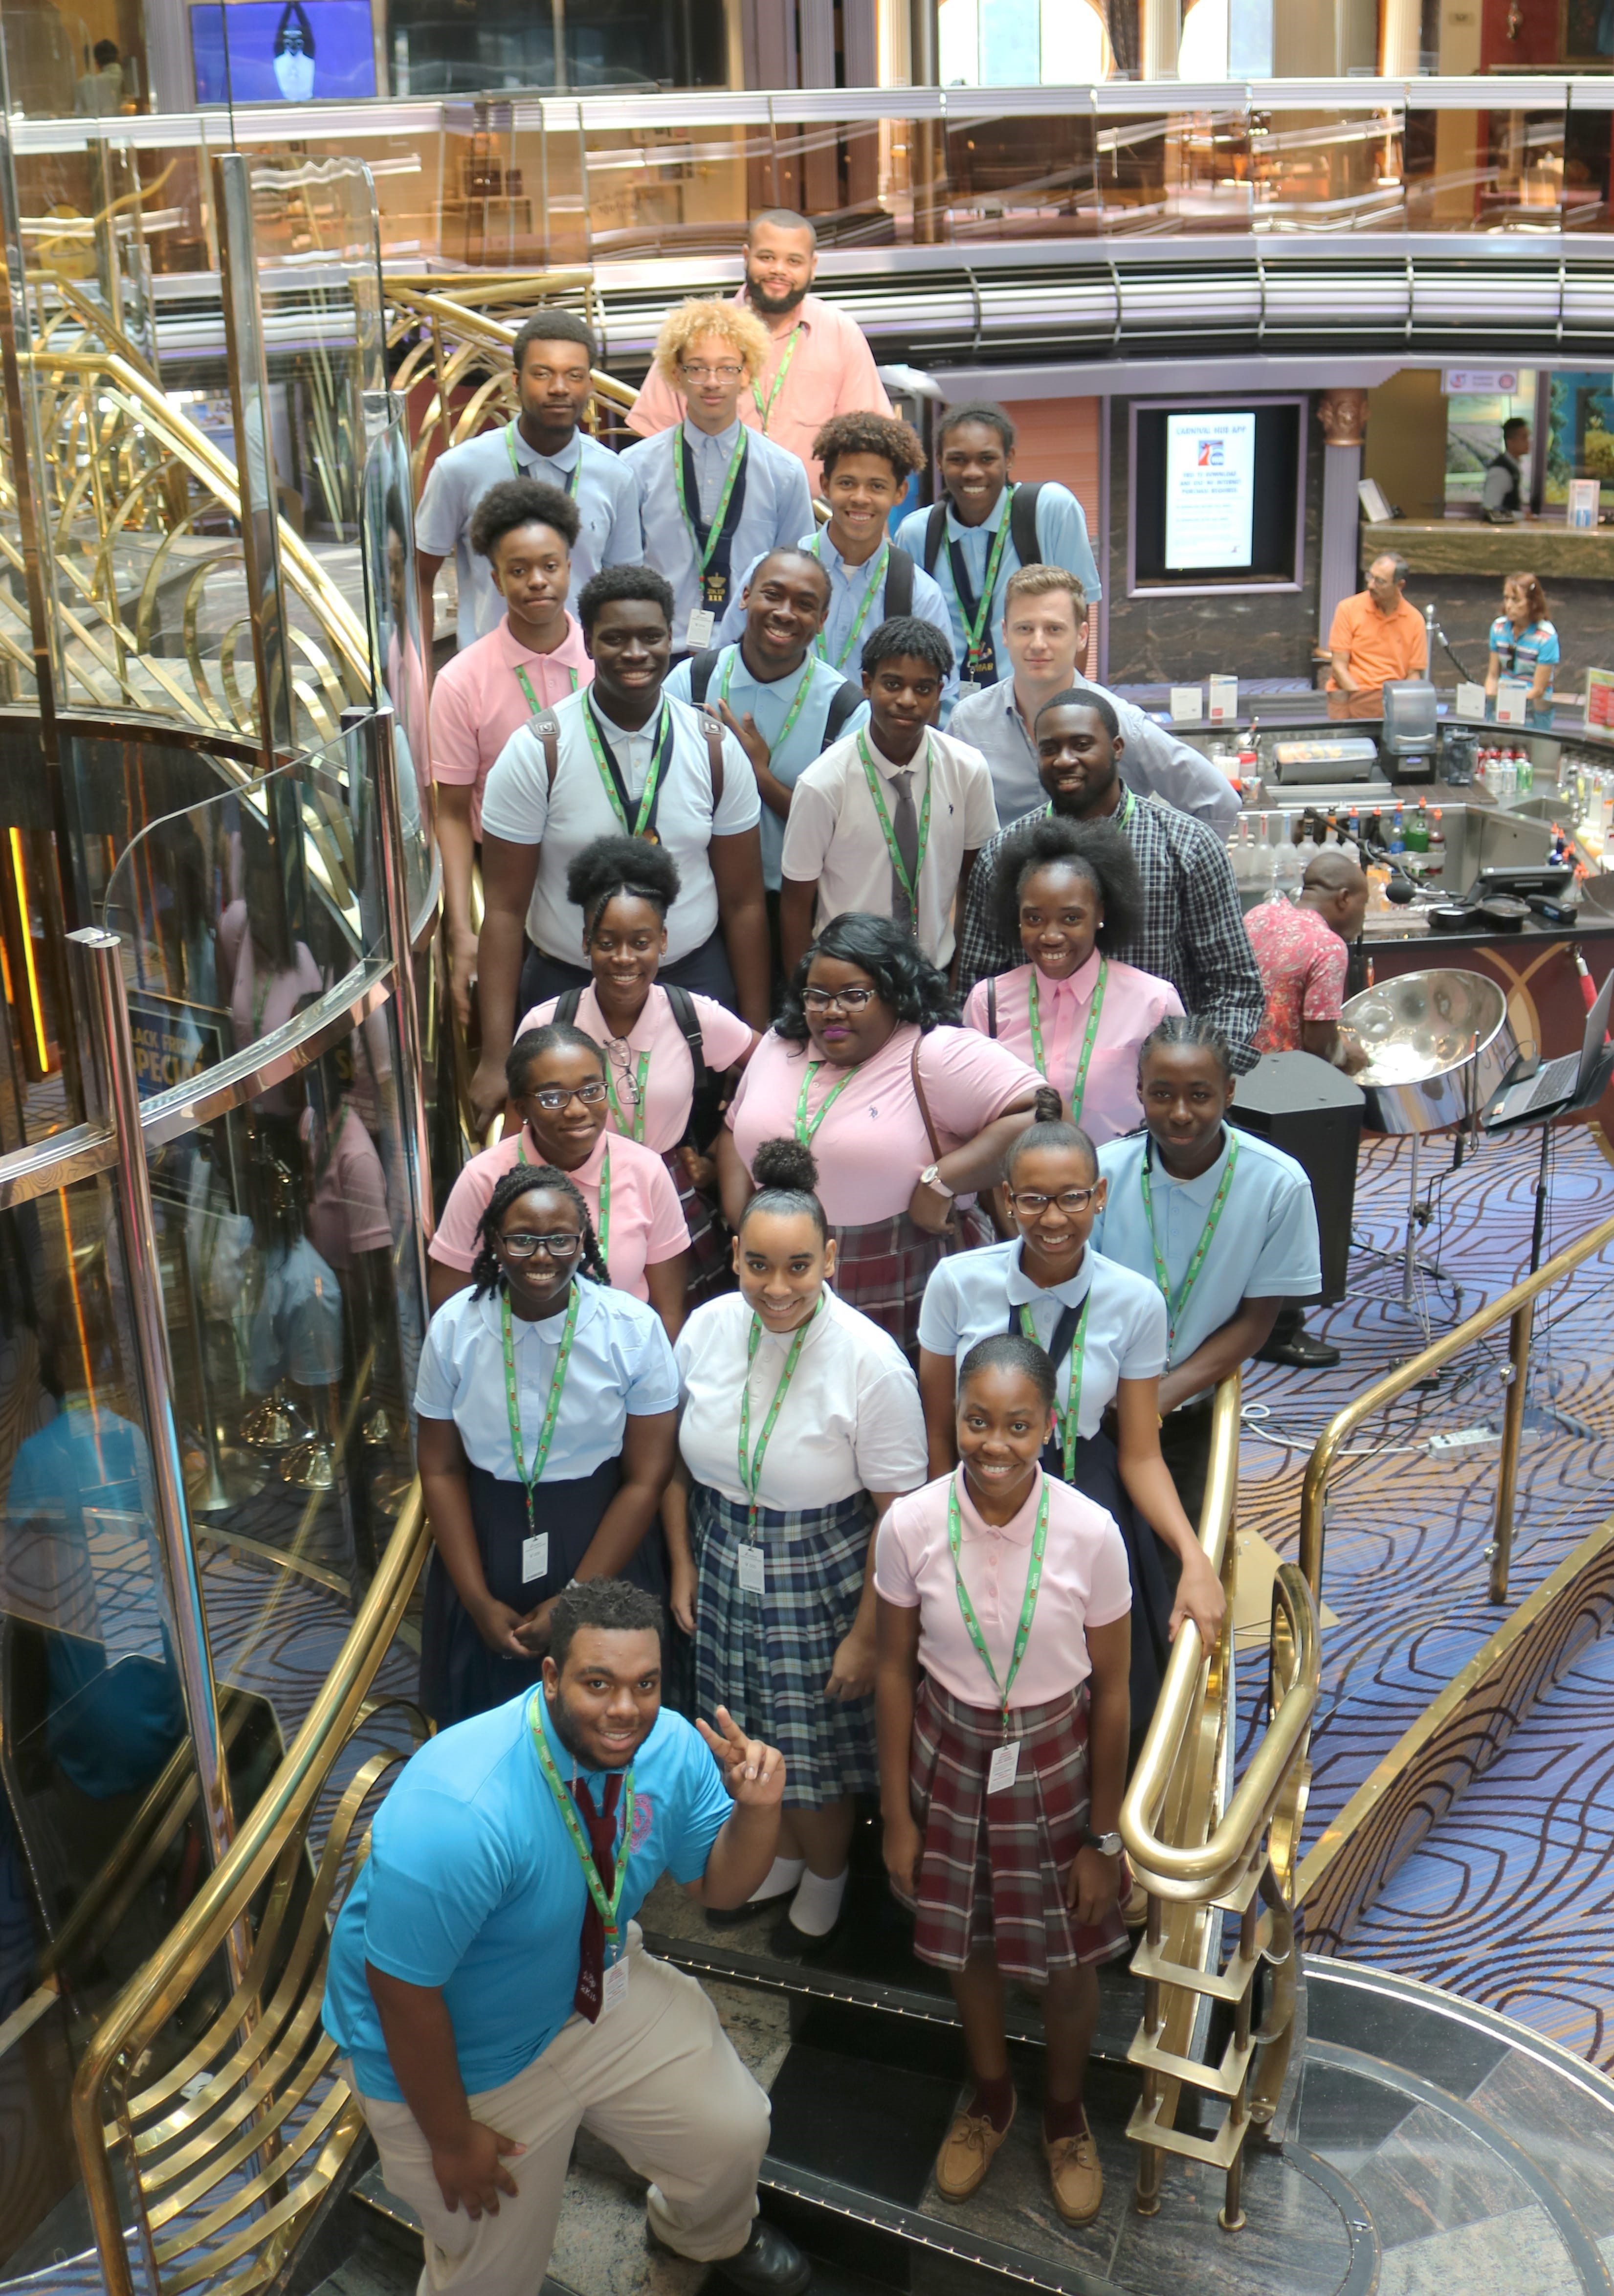 Carnival Cruise Line Performers Encourage Students at Music